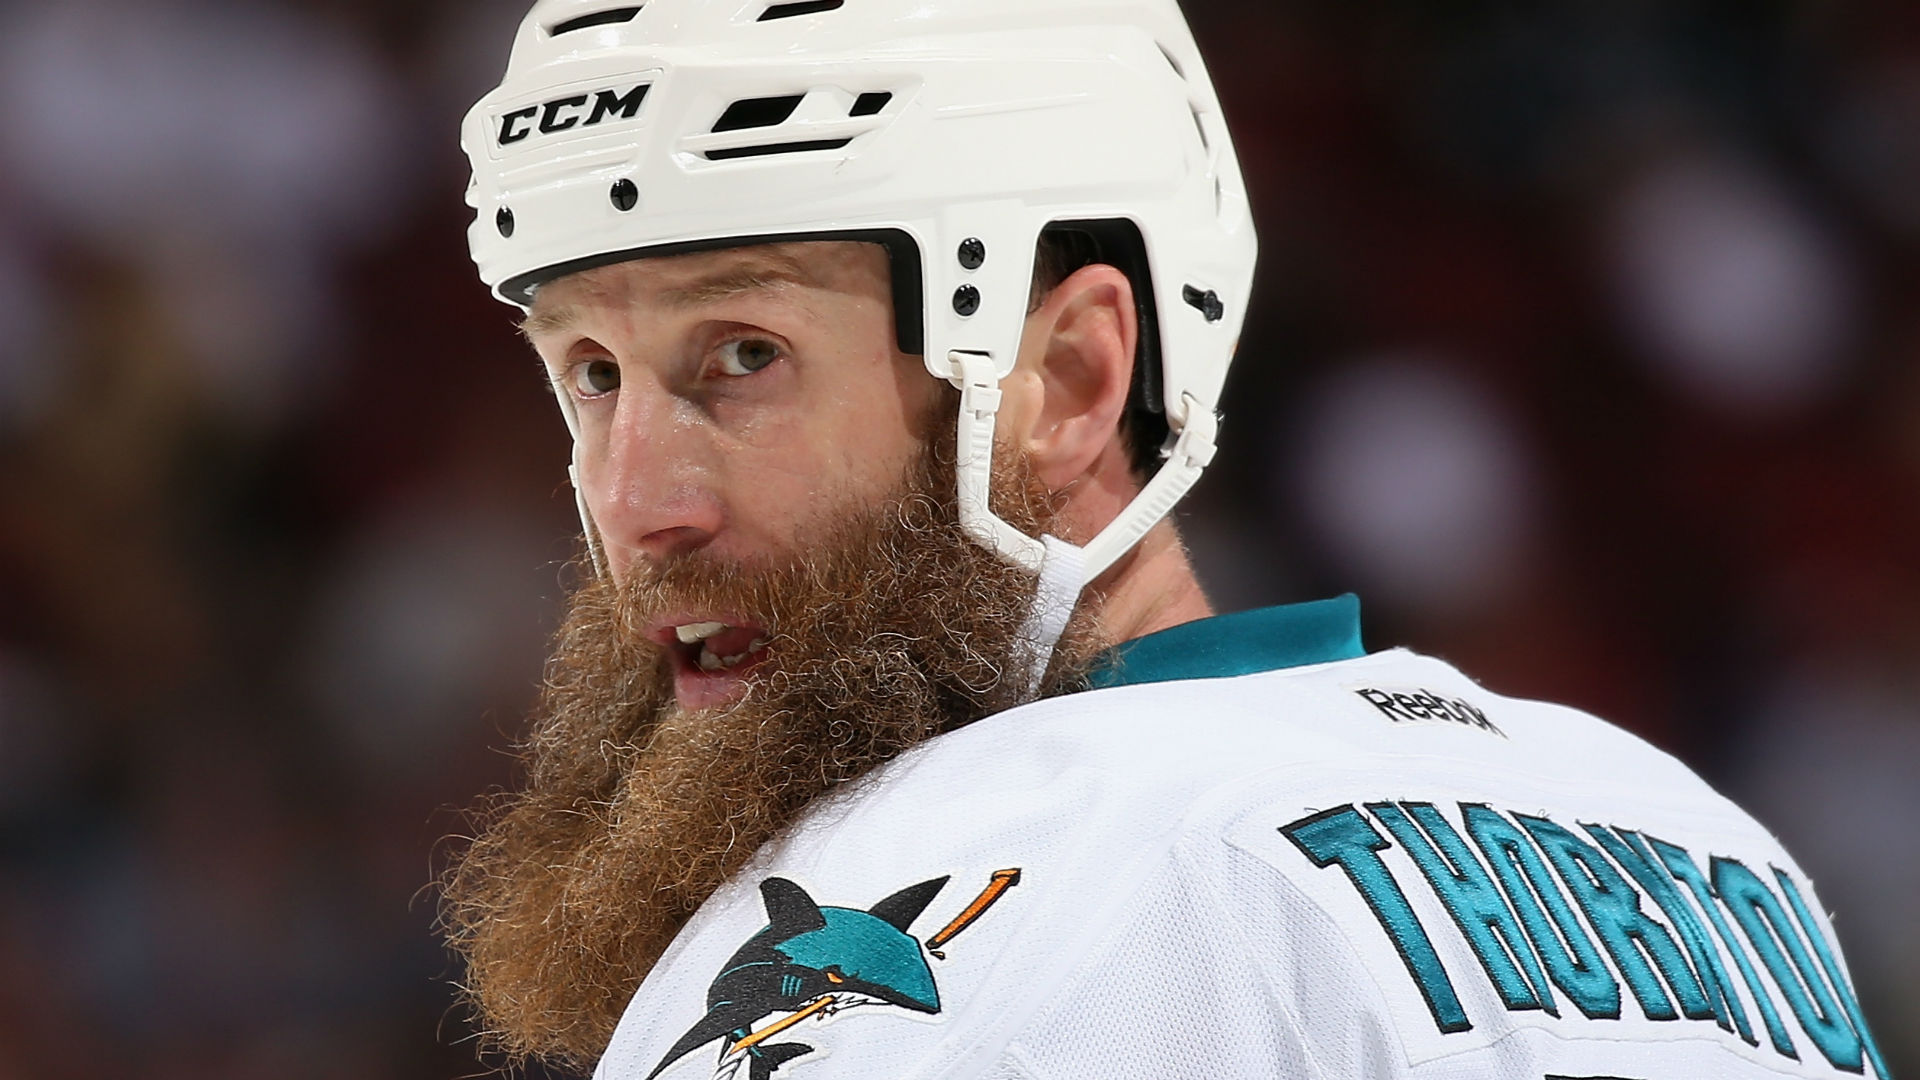 NHL playoffs 2019: Sharks' Joe Thornton suspended 1 game for illegal check